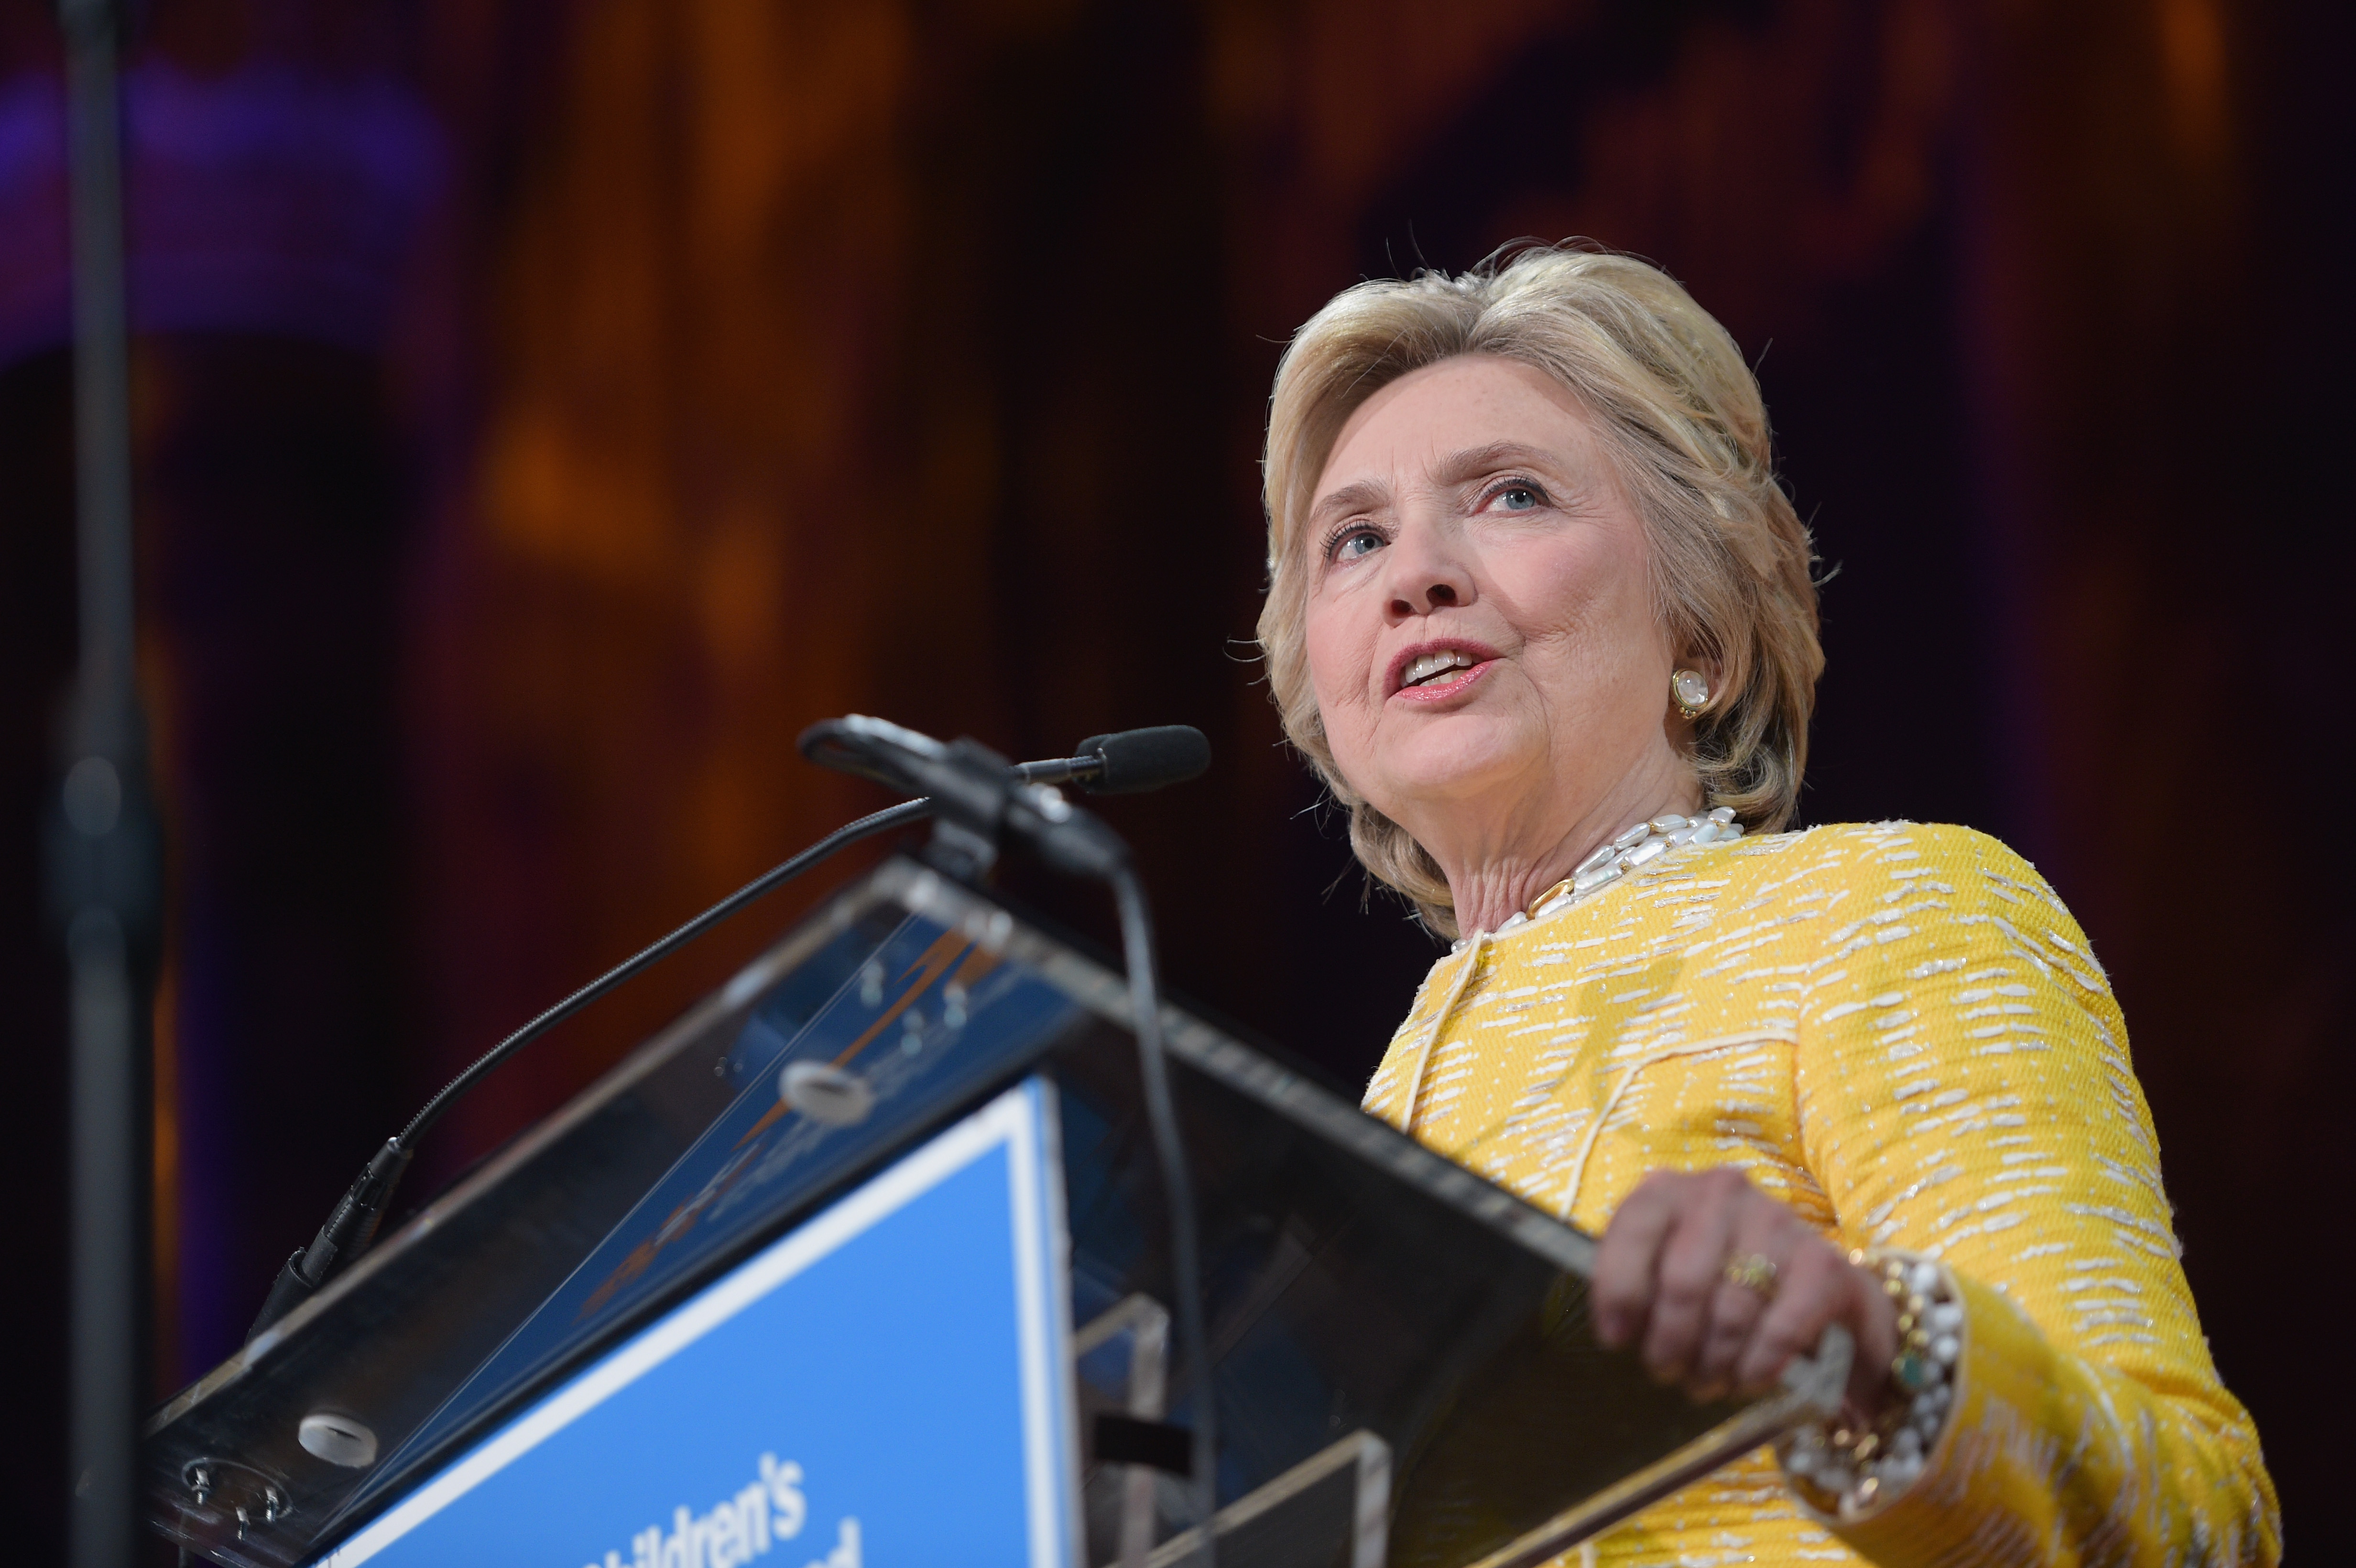 In (partial) defense of Hillary Clinton